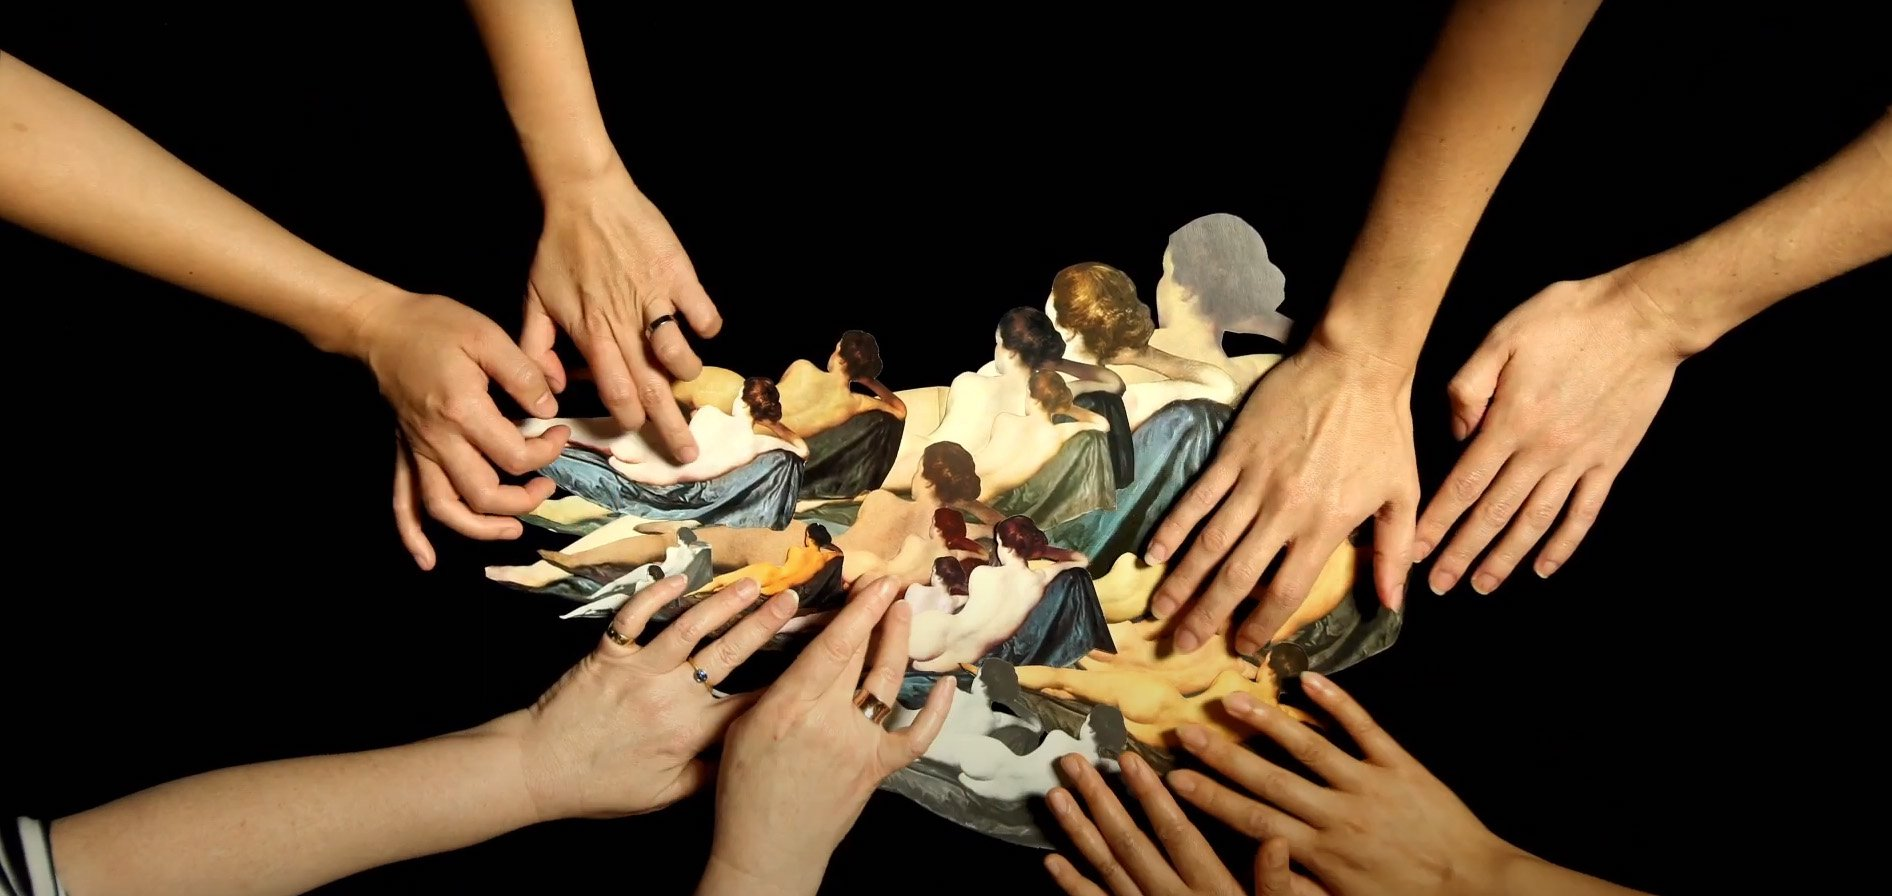 Many hands converging on a collage by Deborah Kelly as part of 'The Gods of Tiny Things'